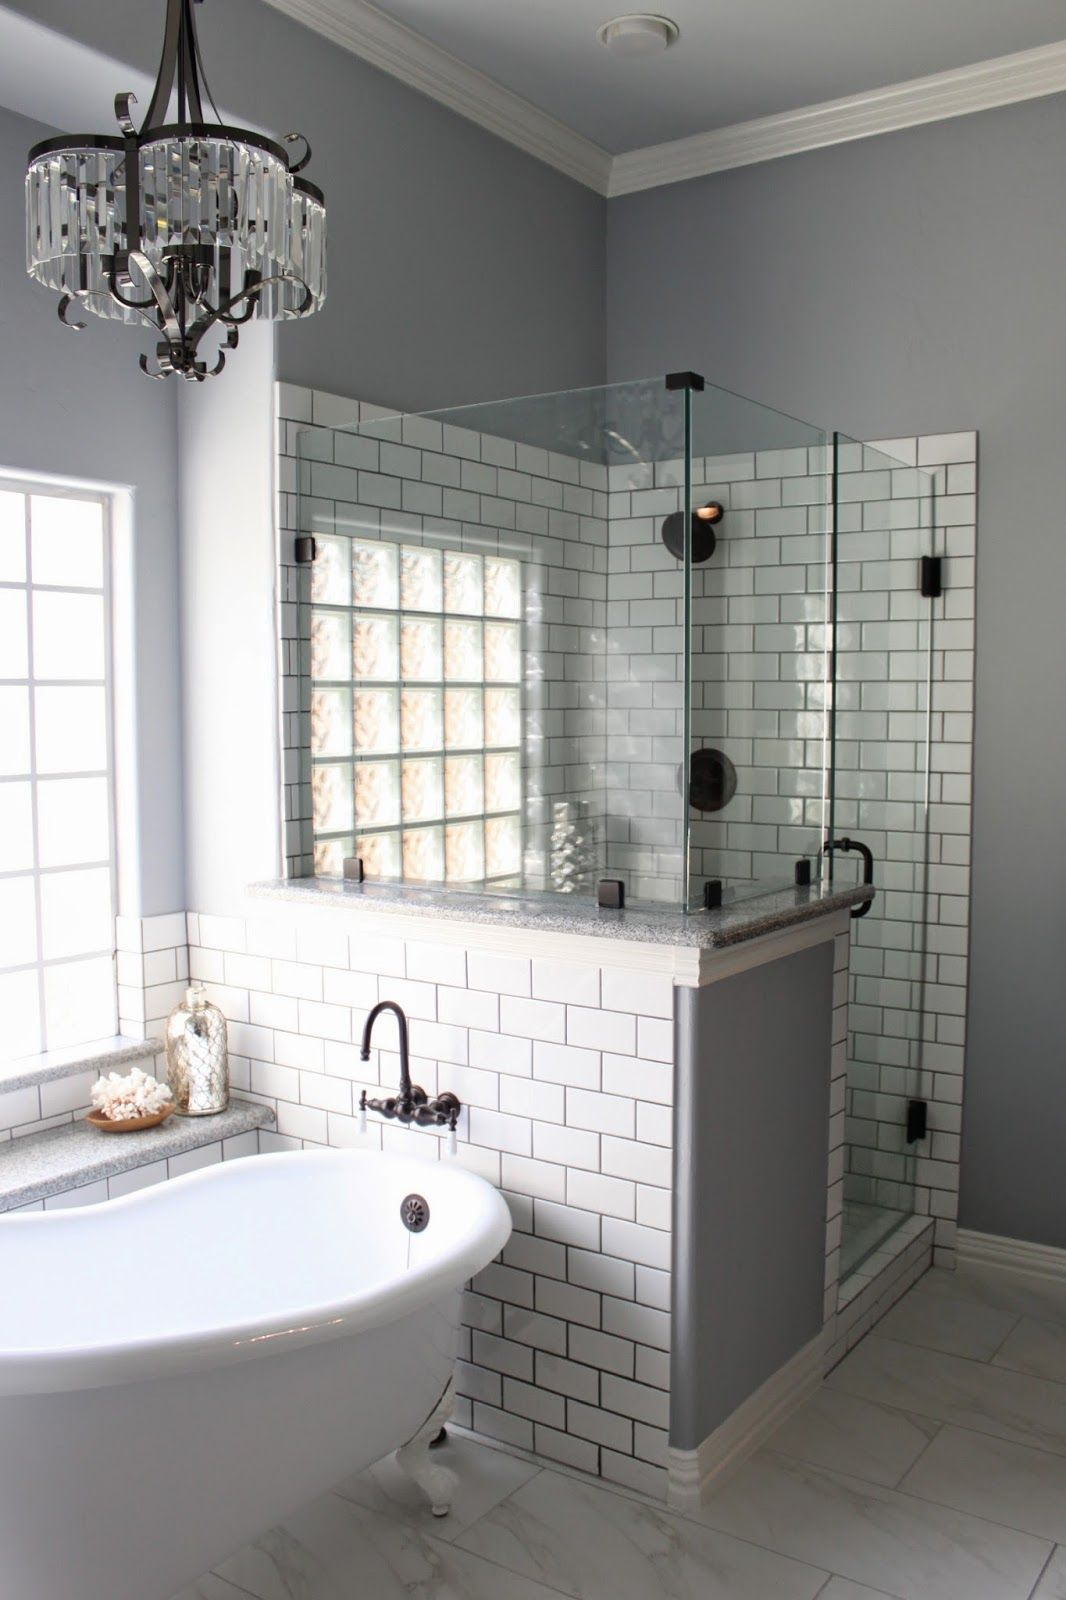 Master Bath Remodel | Bathroom remodel 2016 | Pinterest | Grey grout ...